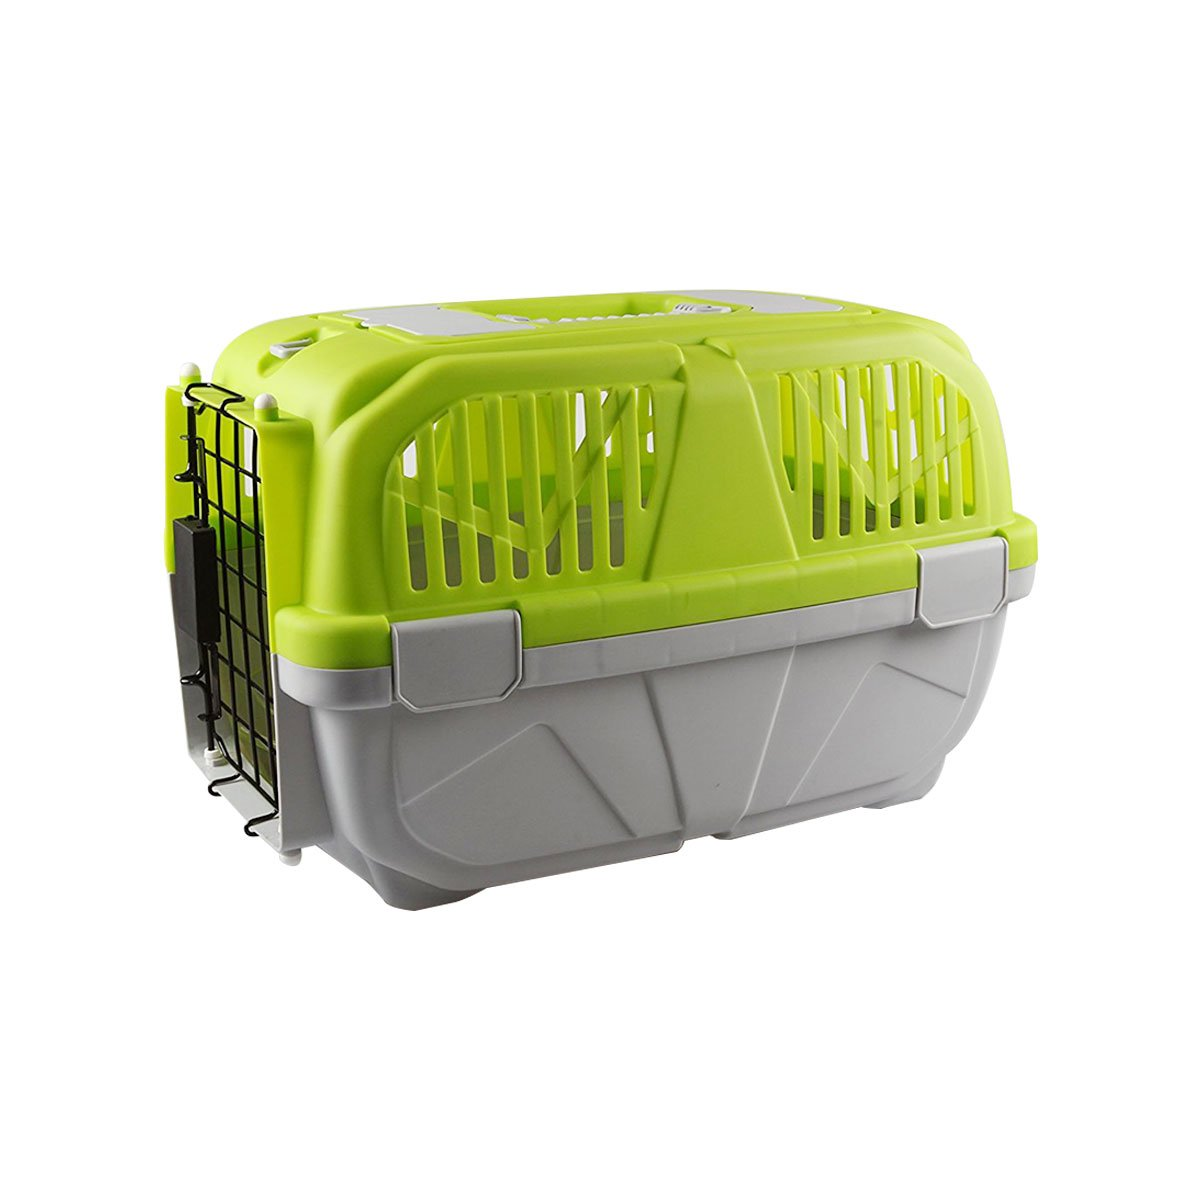 Airline Pet Carriers FATPET Plastic Kennels Portable Plastic Airline Approved